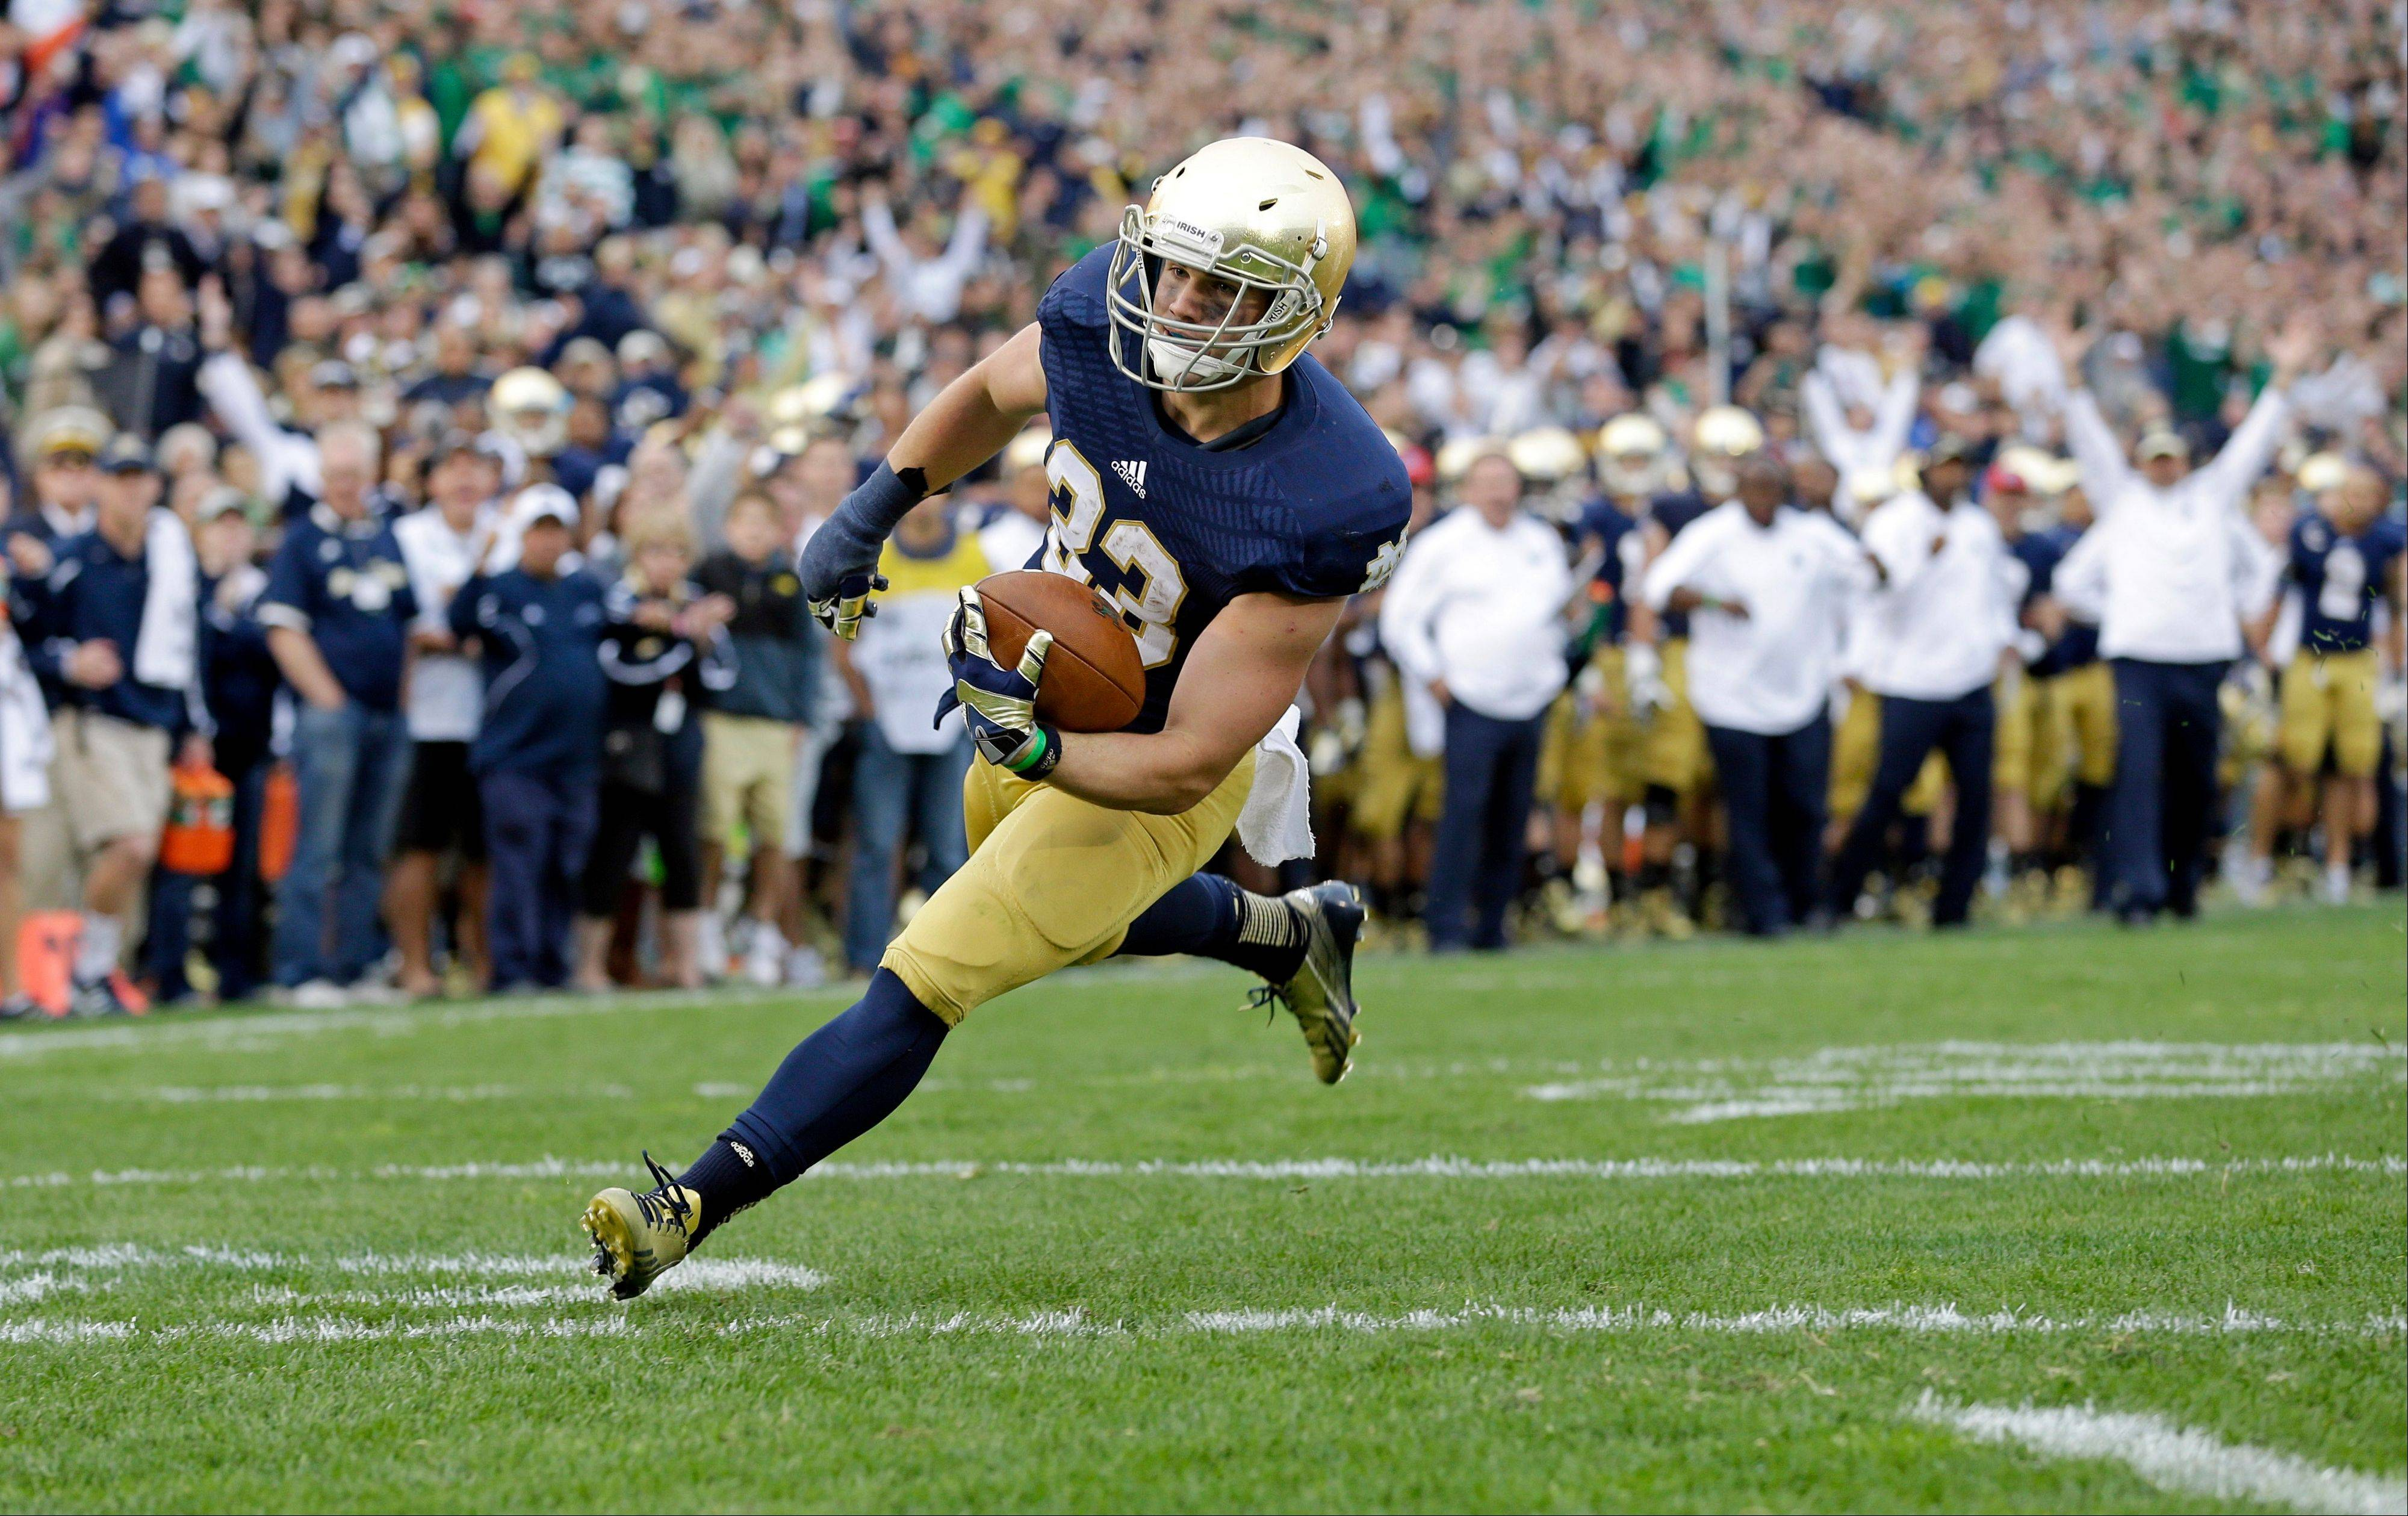 Notre Dame running back Cam McDaniel scores a touchdown against Michigan State during the second half of the Sept. 21 game in South Bend, Ind. The 5-10, 207-pound junior from Coppell, Texas, was given the ball on 12 of the final 16 plays of the game.